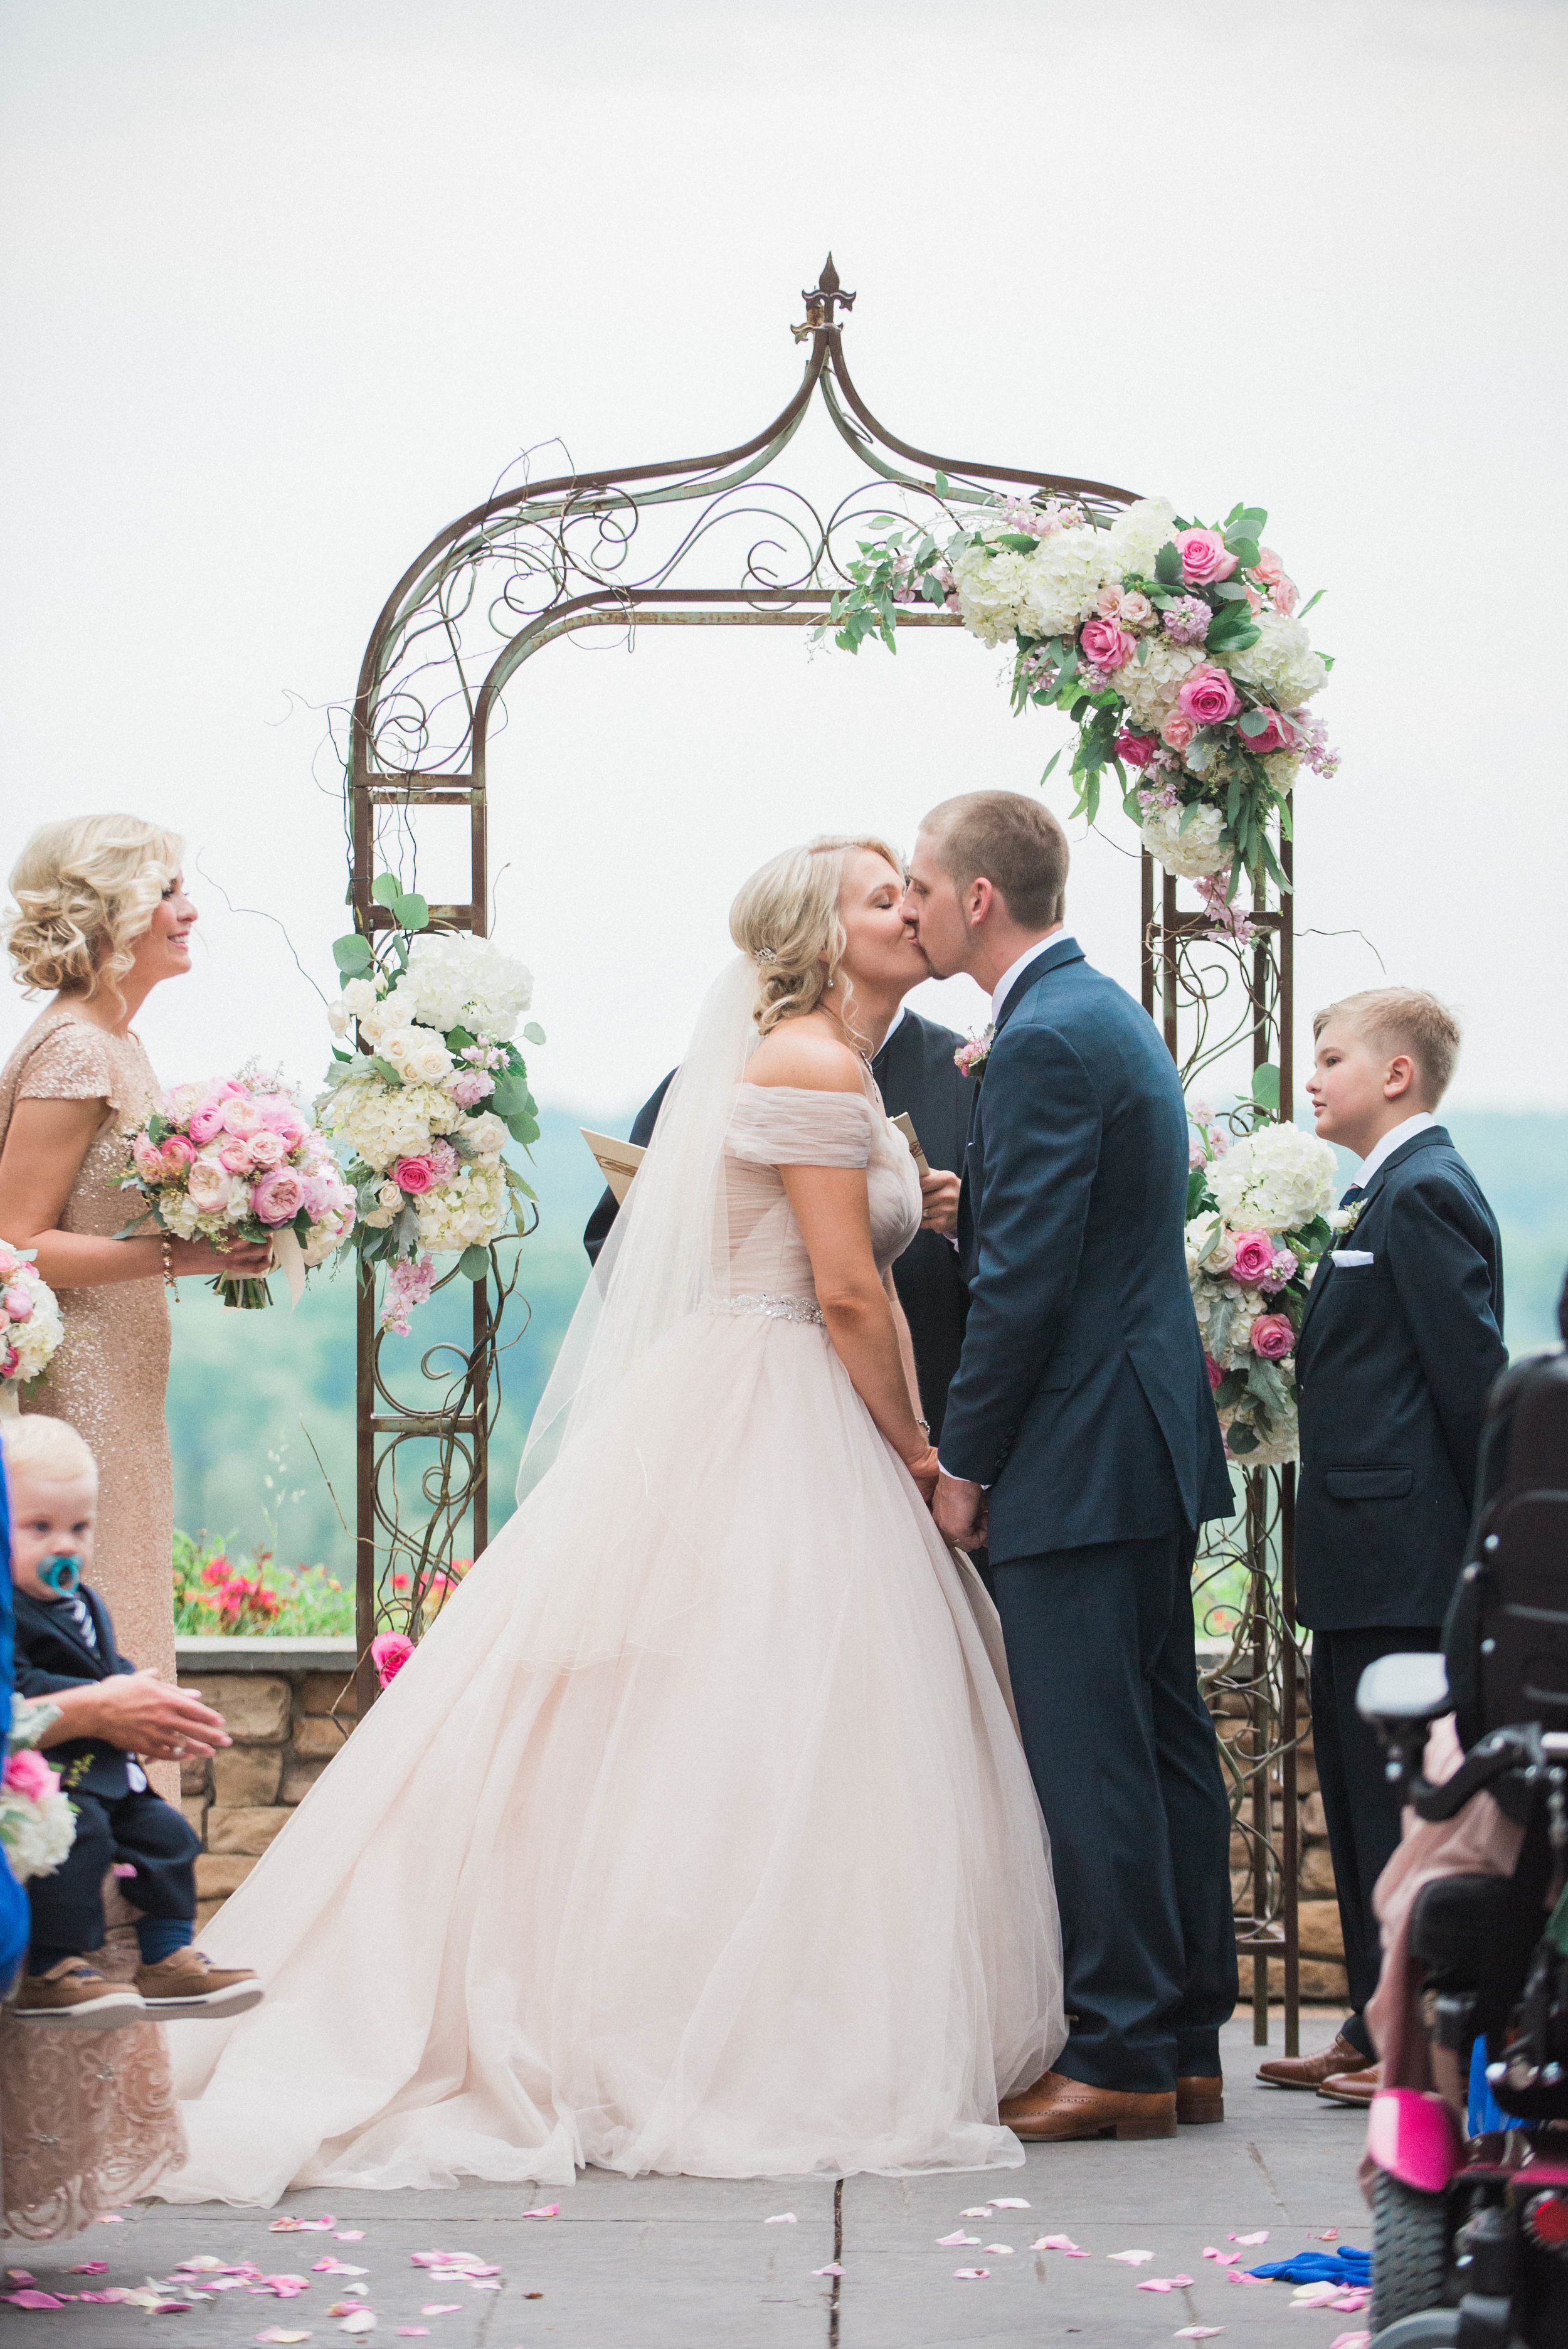 Rental Arch with florals and branches, photography by Megan Schmitz Photography.